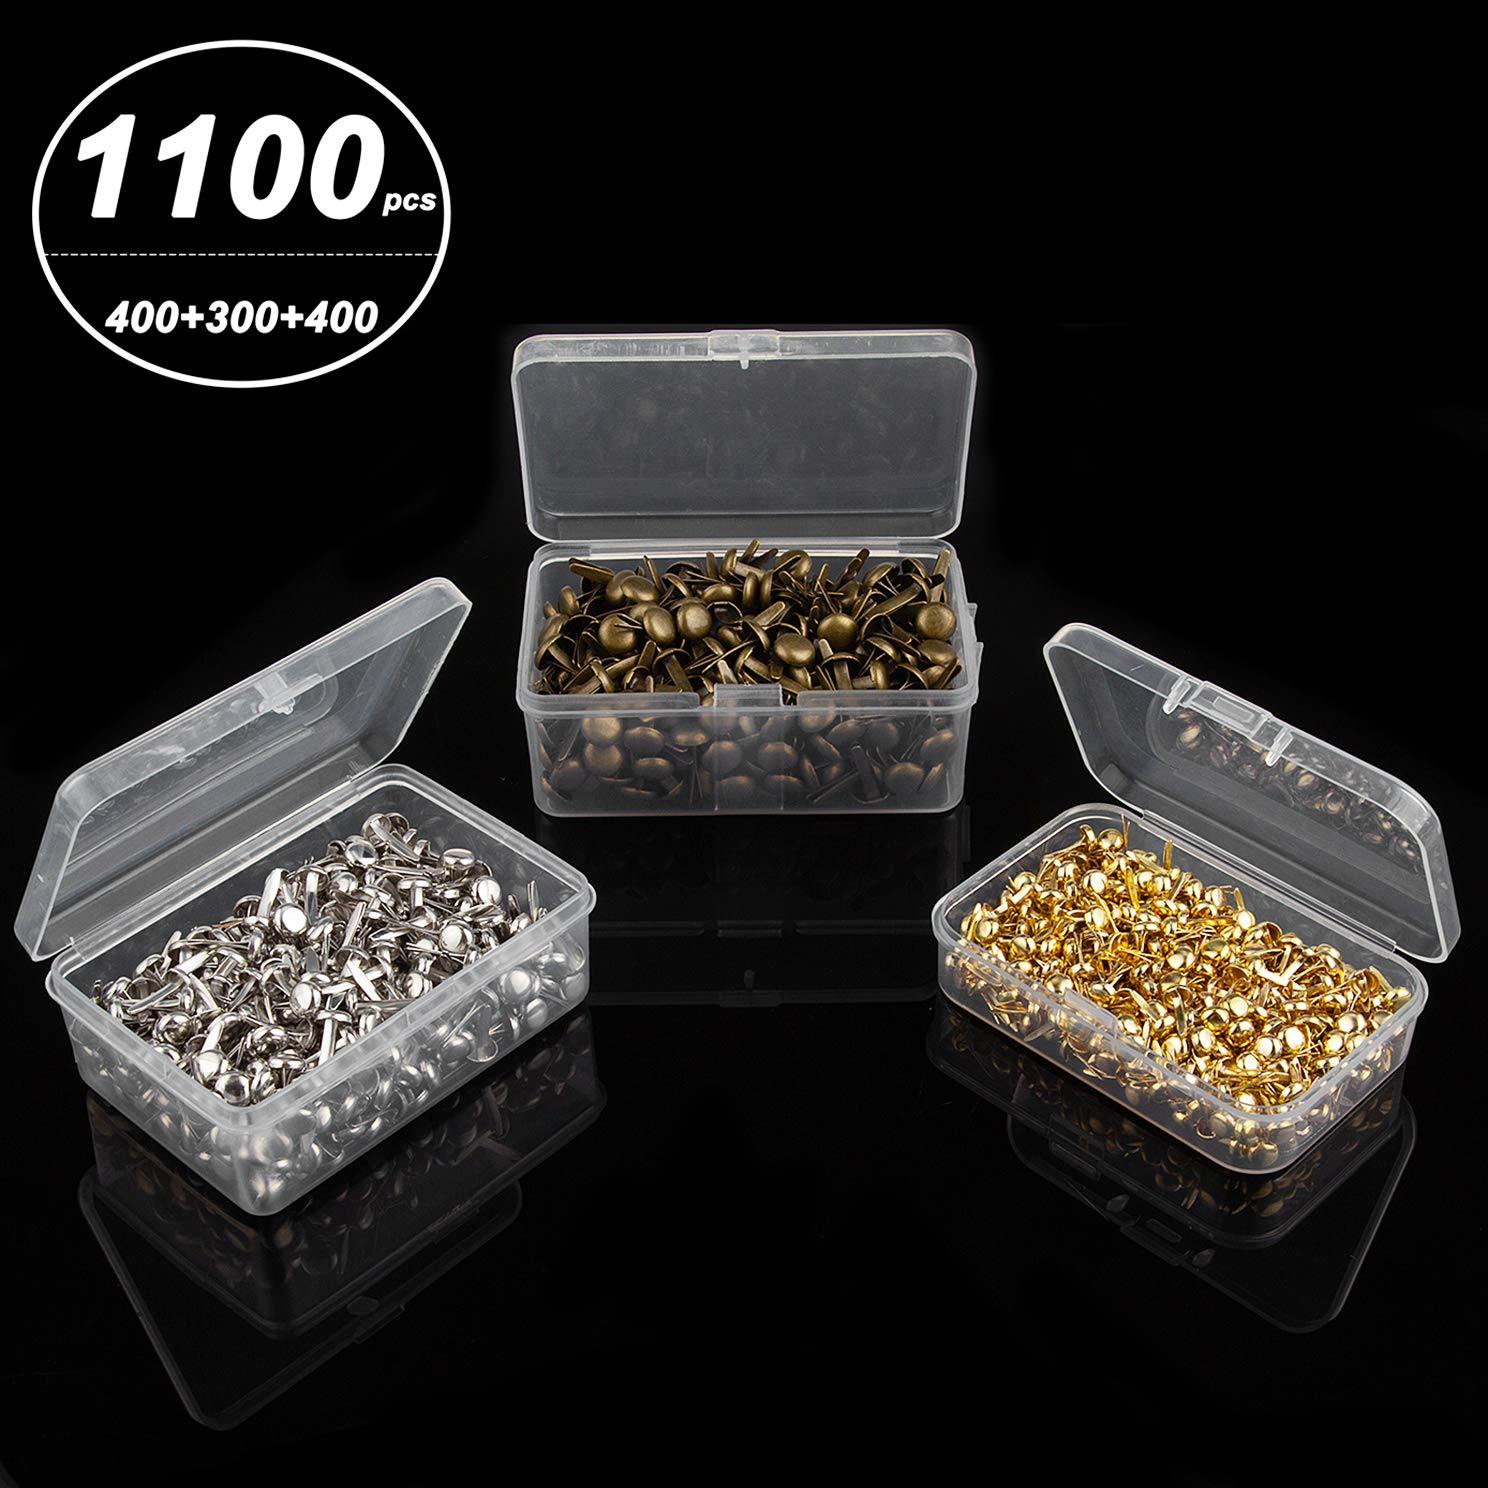 CenterZ 1100 Pcs 3 Sizes Mini Brads with 3 Clear Storage Box, Metal Paper Fasteners for Scrapbooking Recollections, Craft Decorative (400pcs 8mm Gold, 400pcs 12mm Silver, 300pcs 15mm Brass Brad Pins)